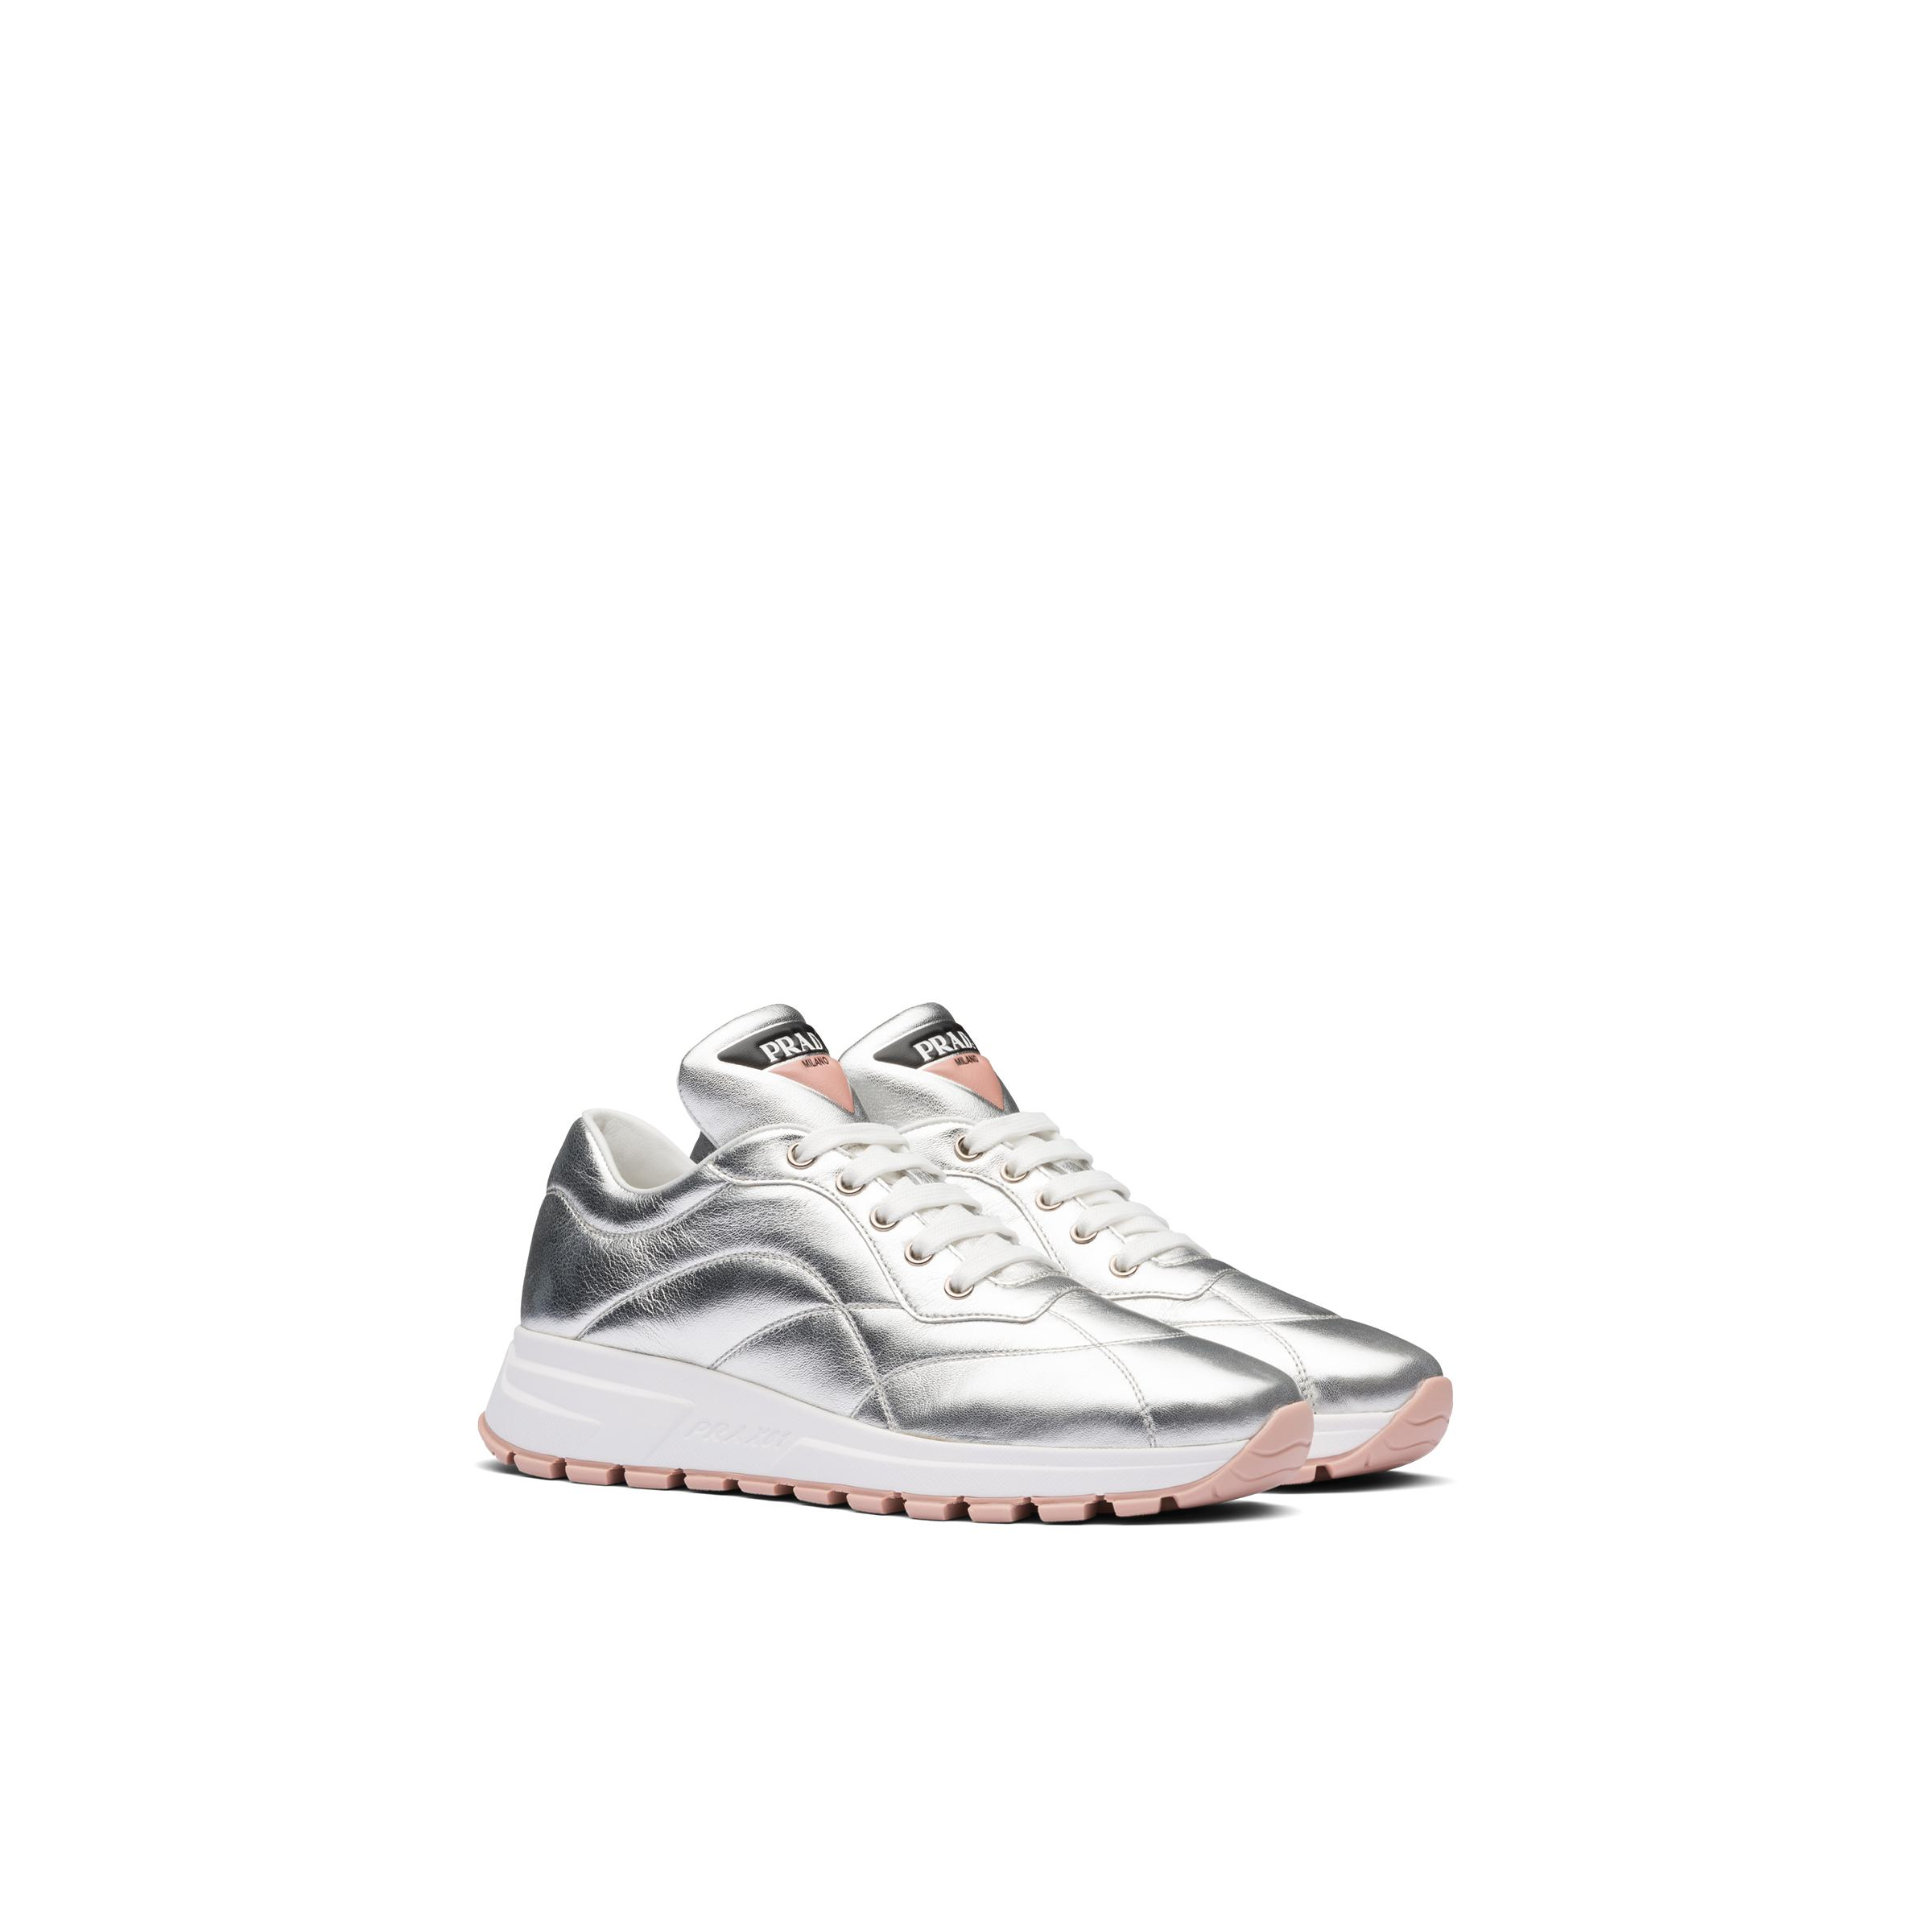 Prax 01 Nappa Leather Sneakers Women Silver/orchid